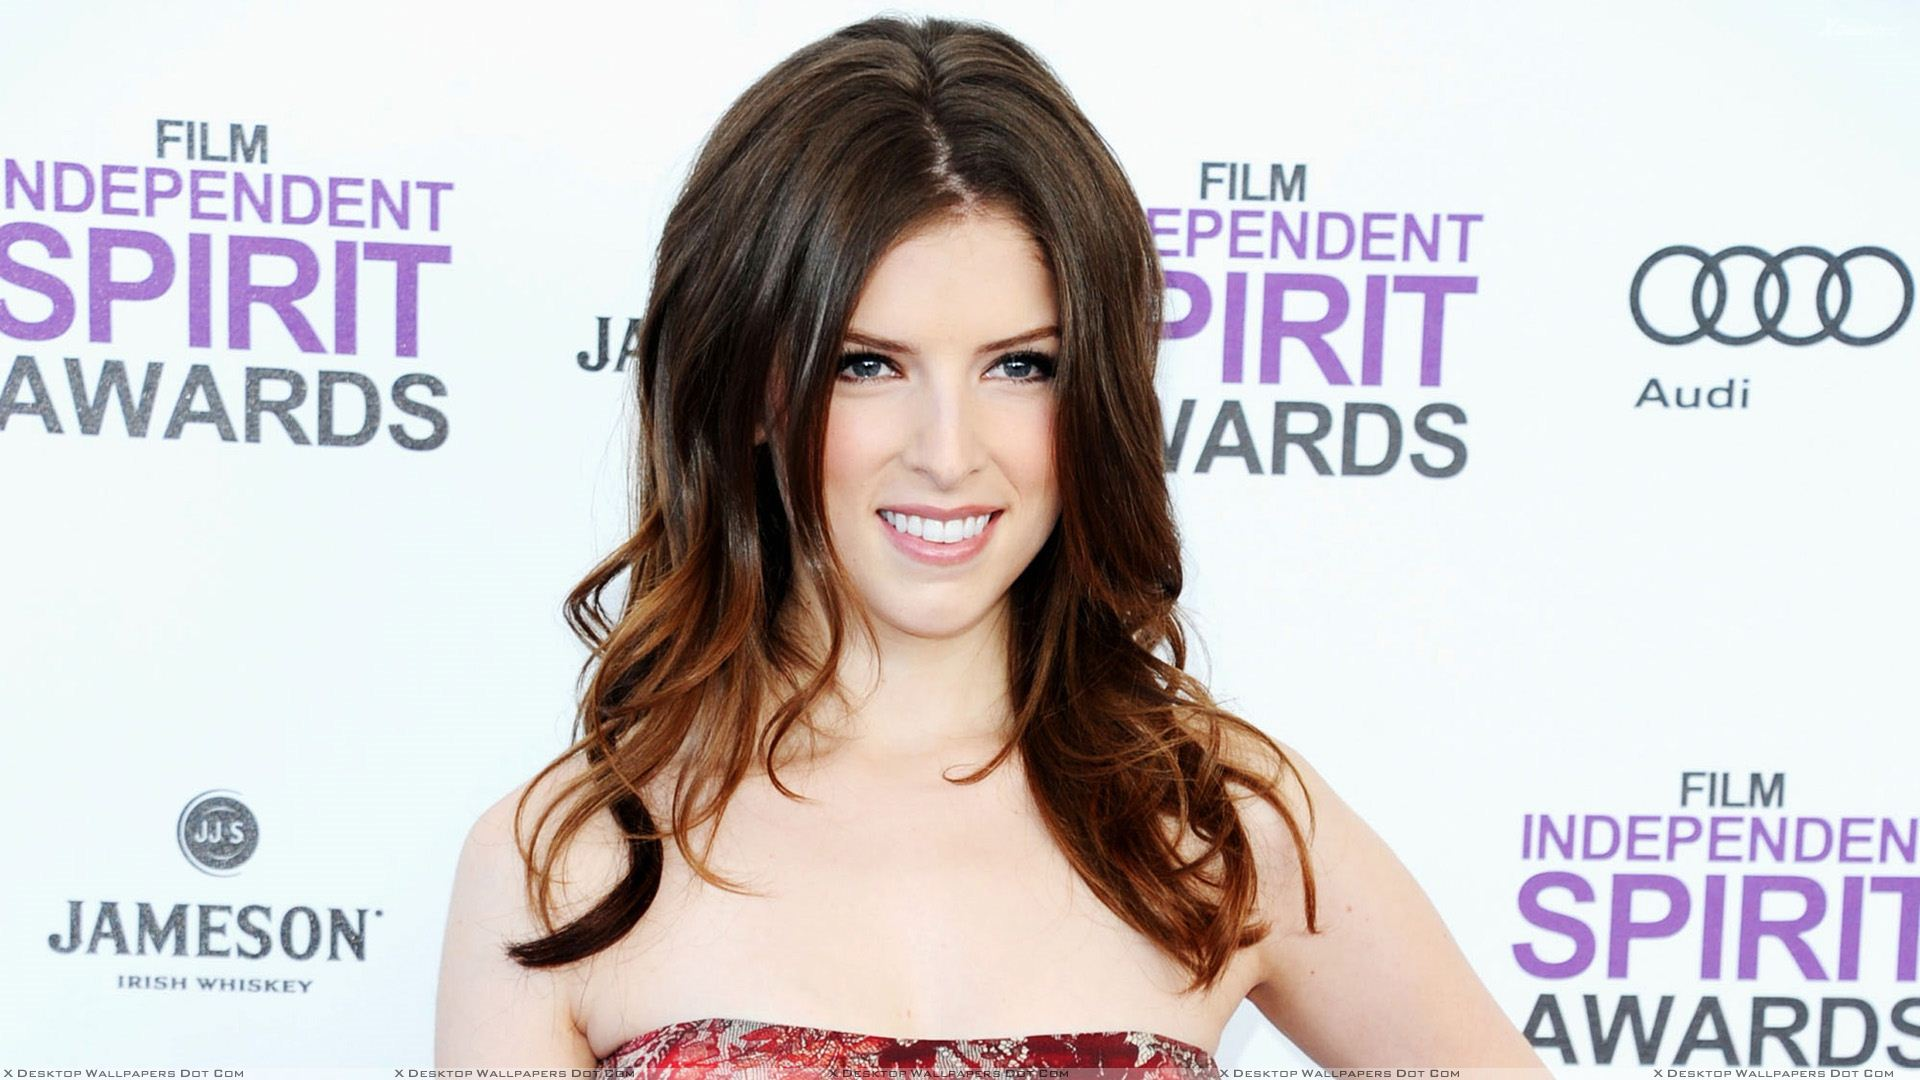 You Are Viewing Wallpaper Titled Beautiful Smiling Pose Of Anna Kendrick At Independent